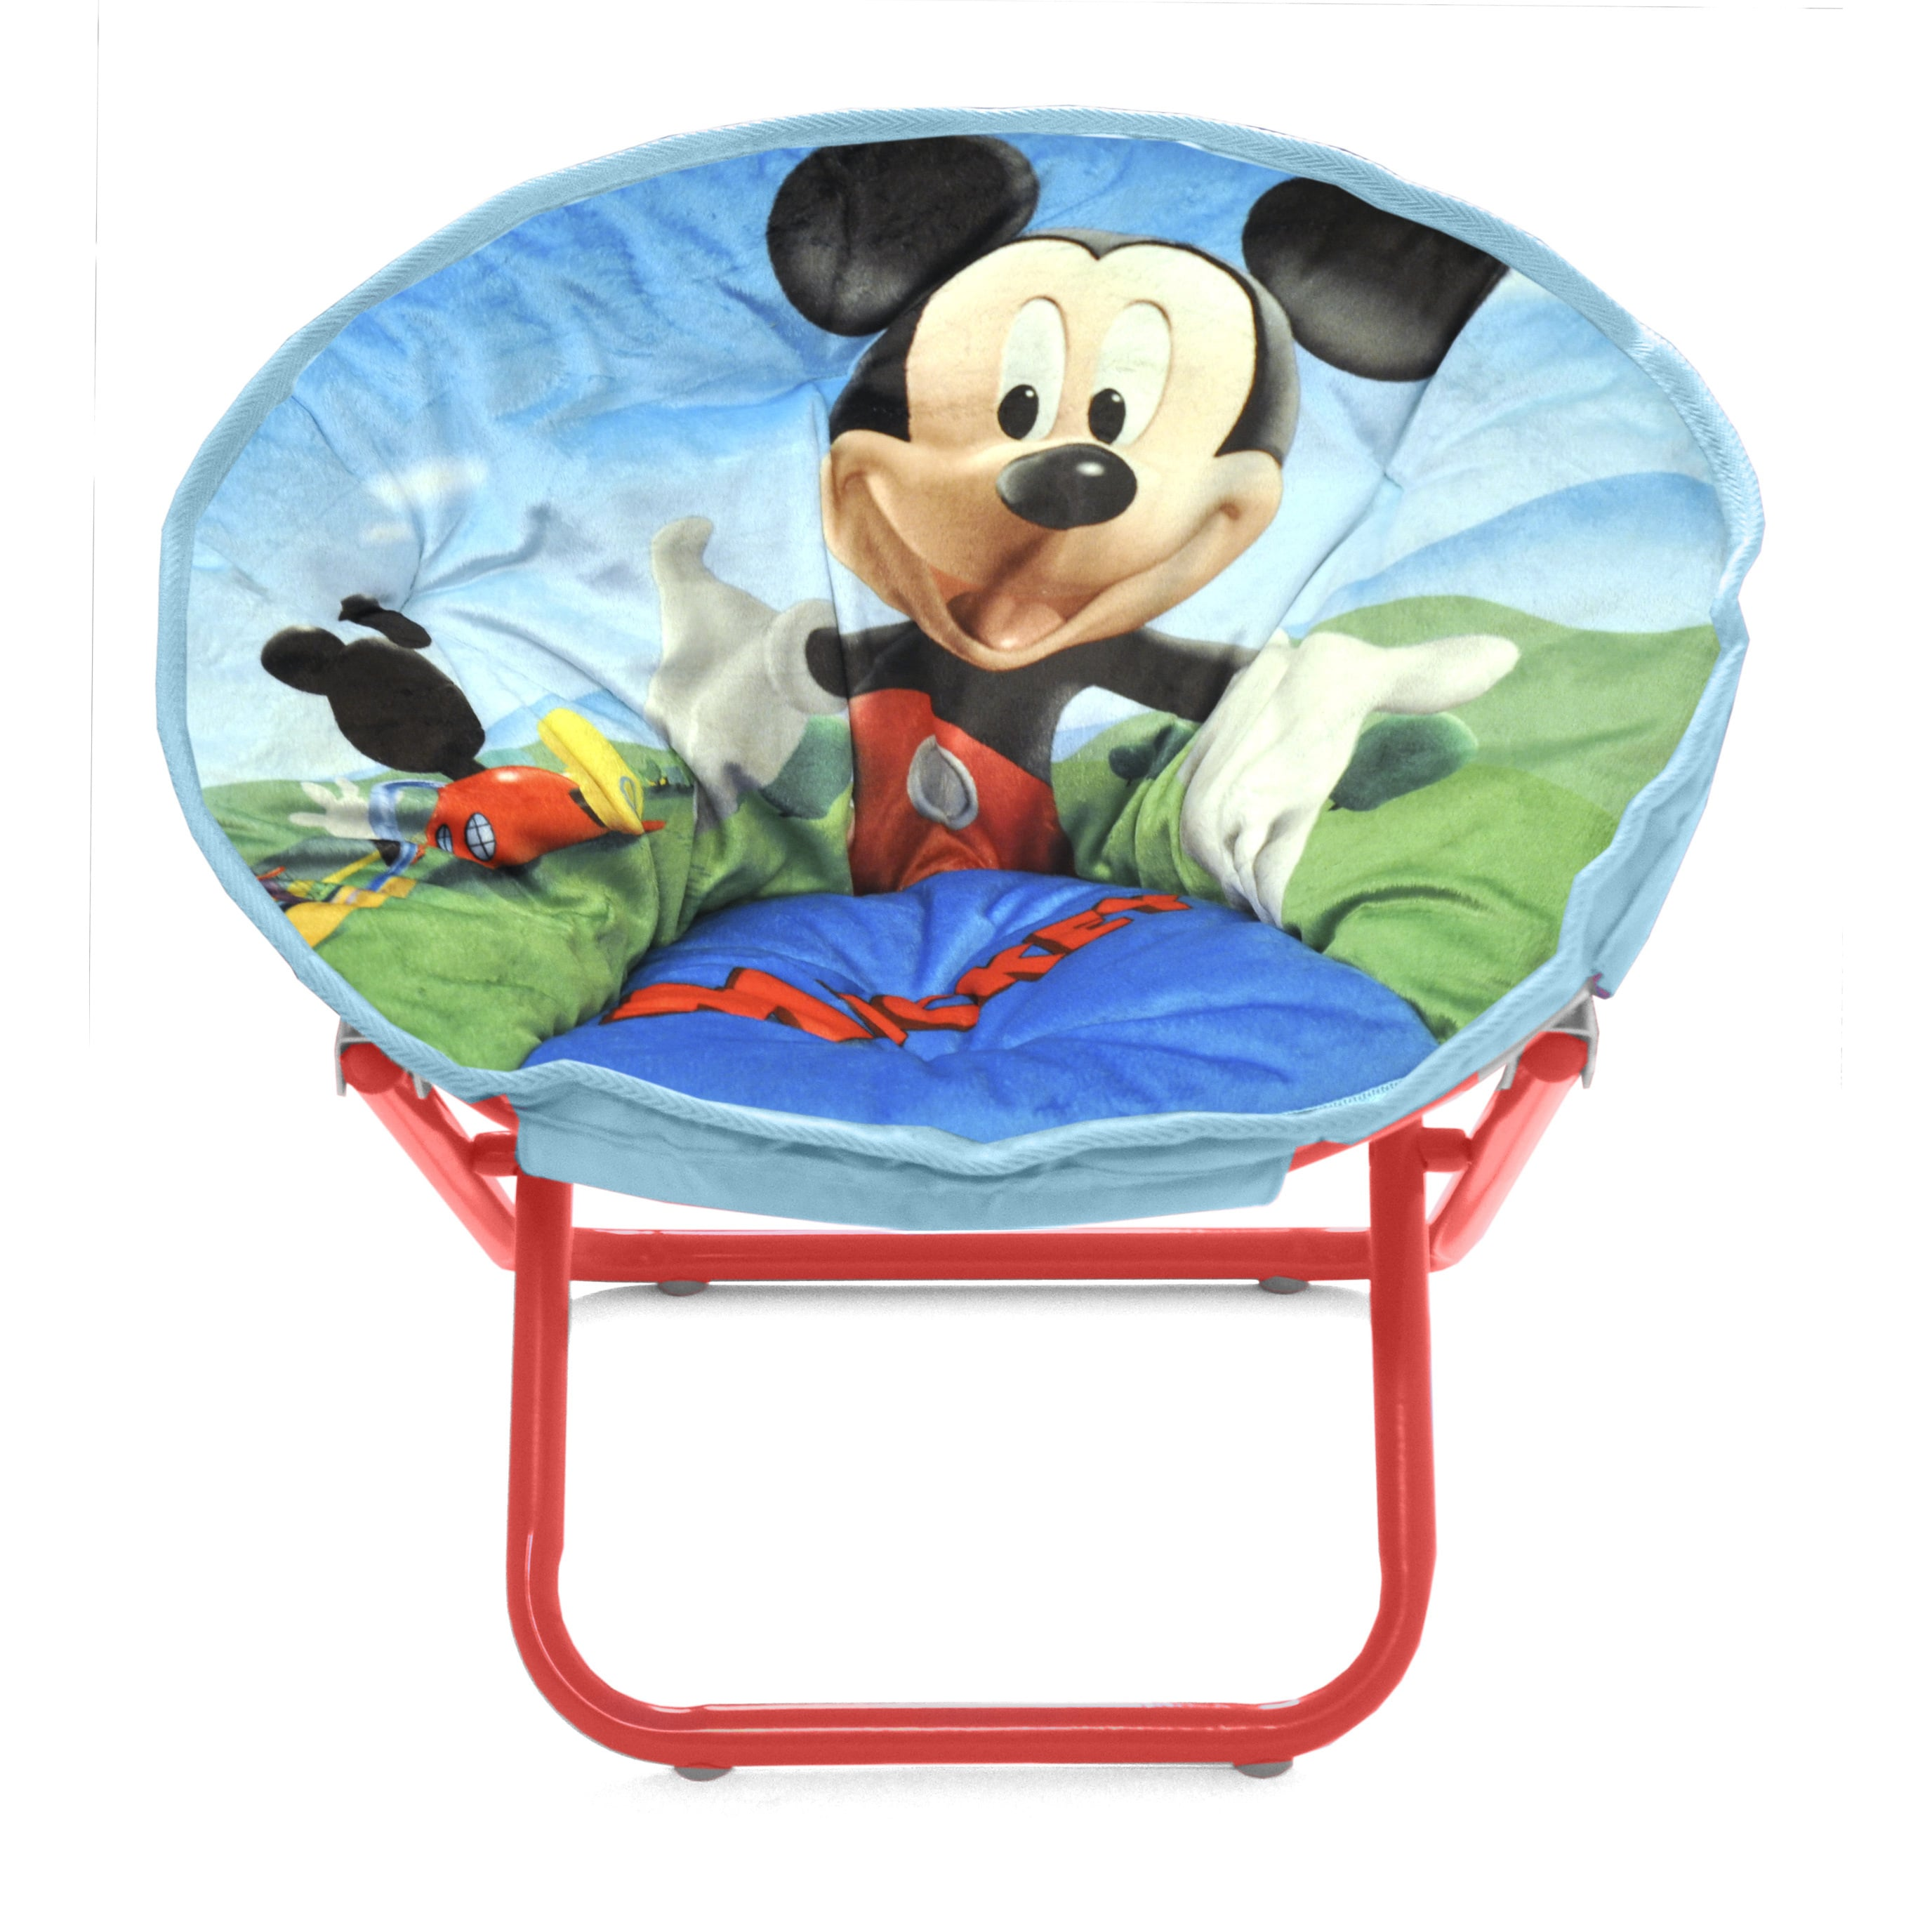 Mickey Mouse Chairs For Toddlers Disney Toddler Mickey Mouse Mini Saucer Kid S Chair